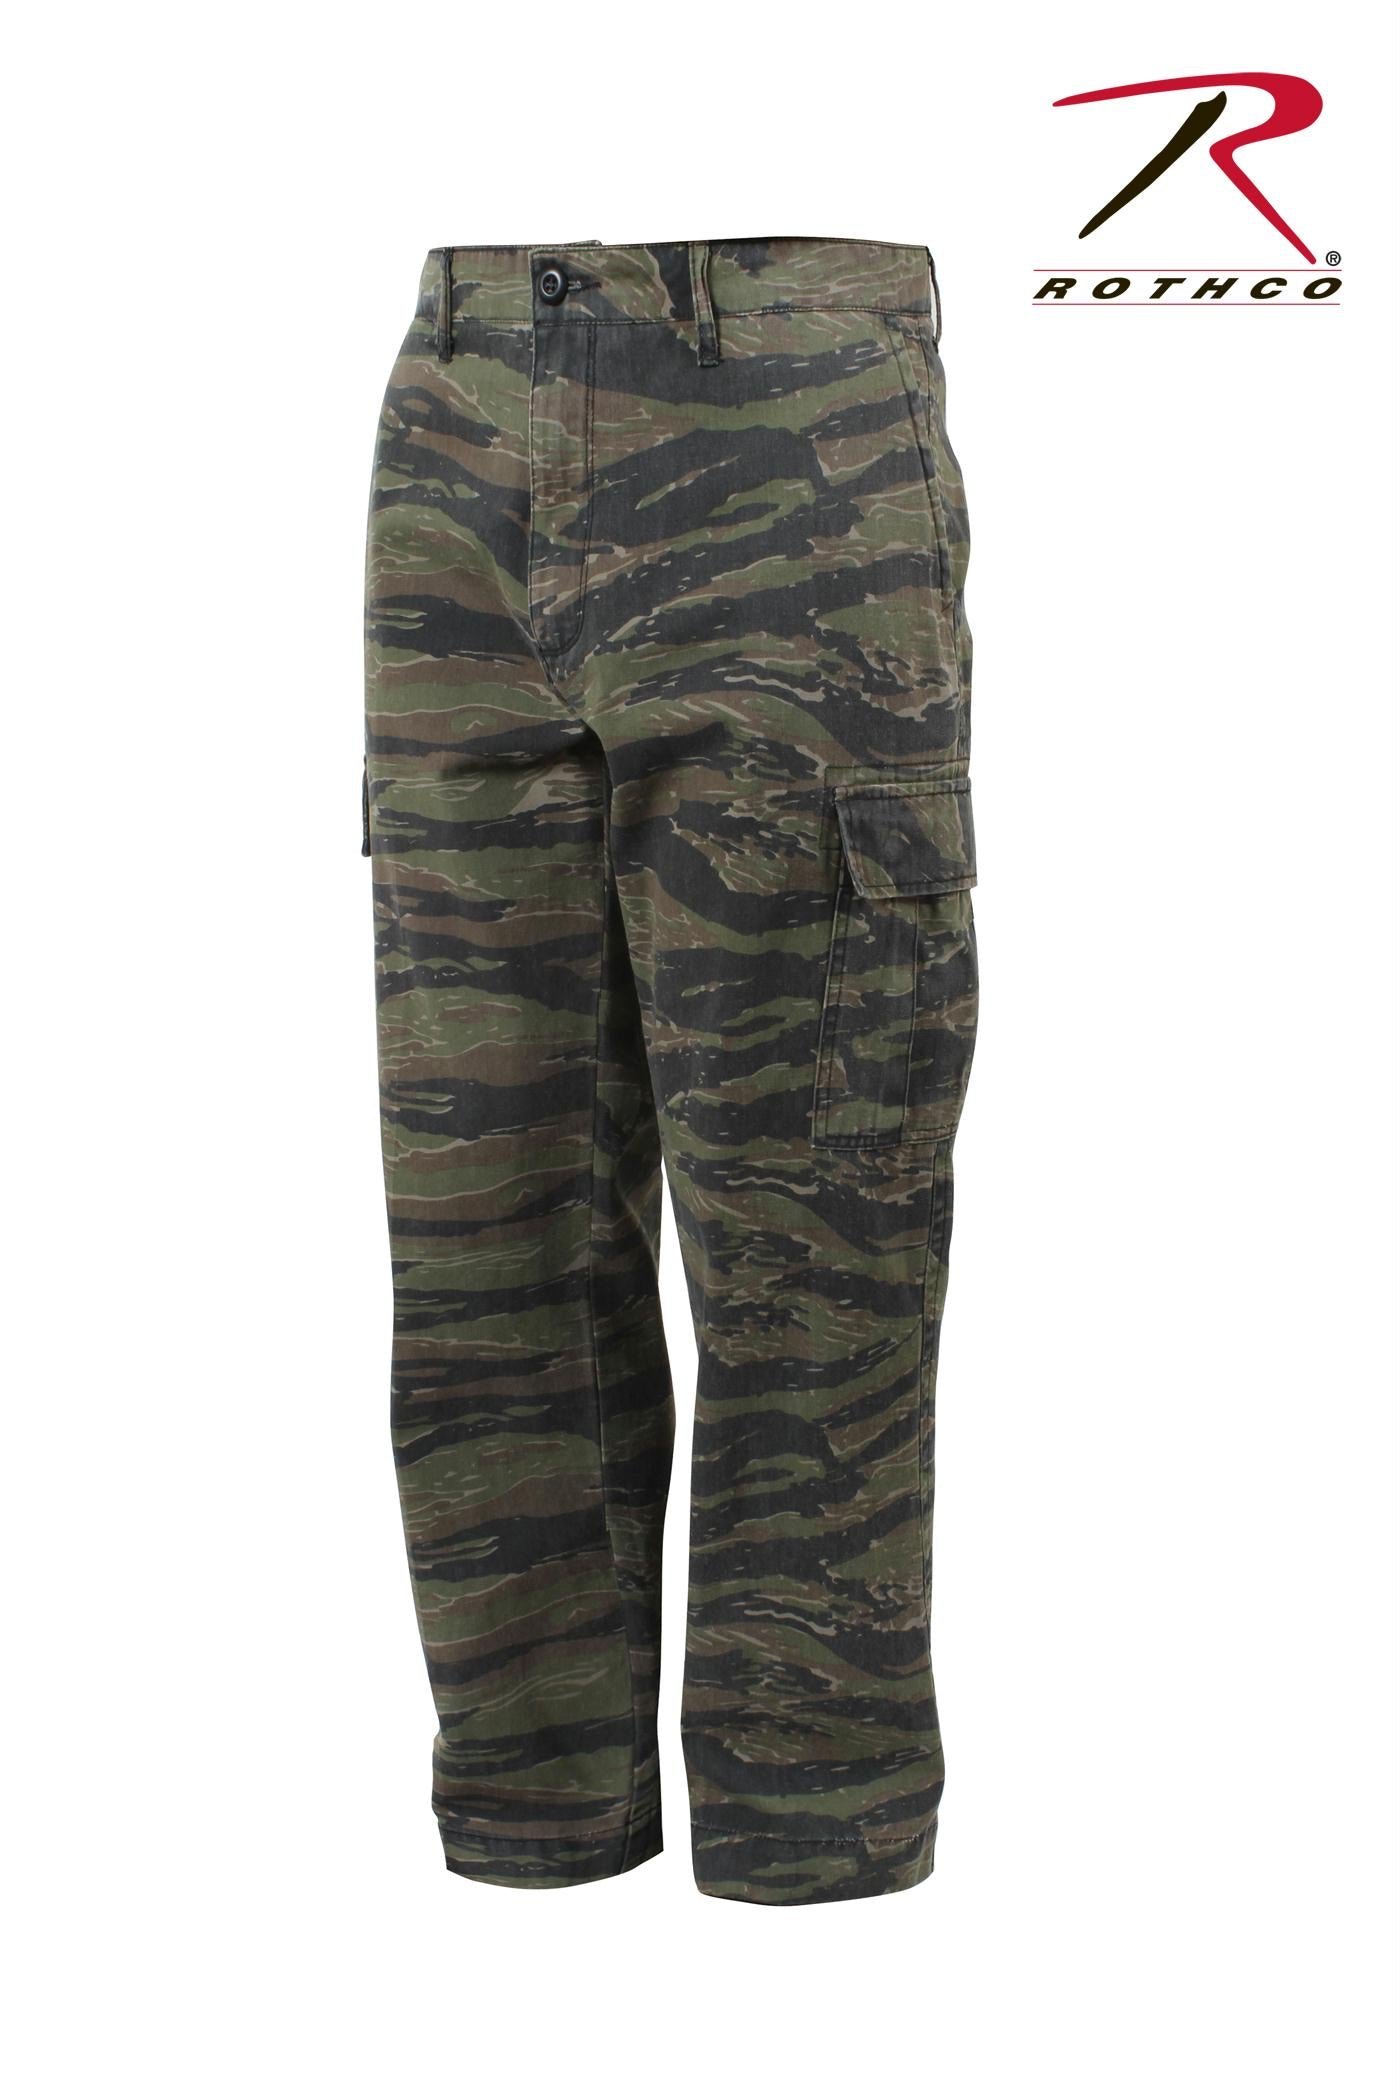 Rothco Vintage 6-Pocket Flat Front Fatigue Pants - Tiger Stripe Camo / 40